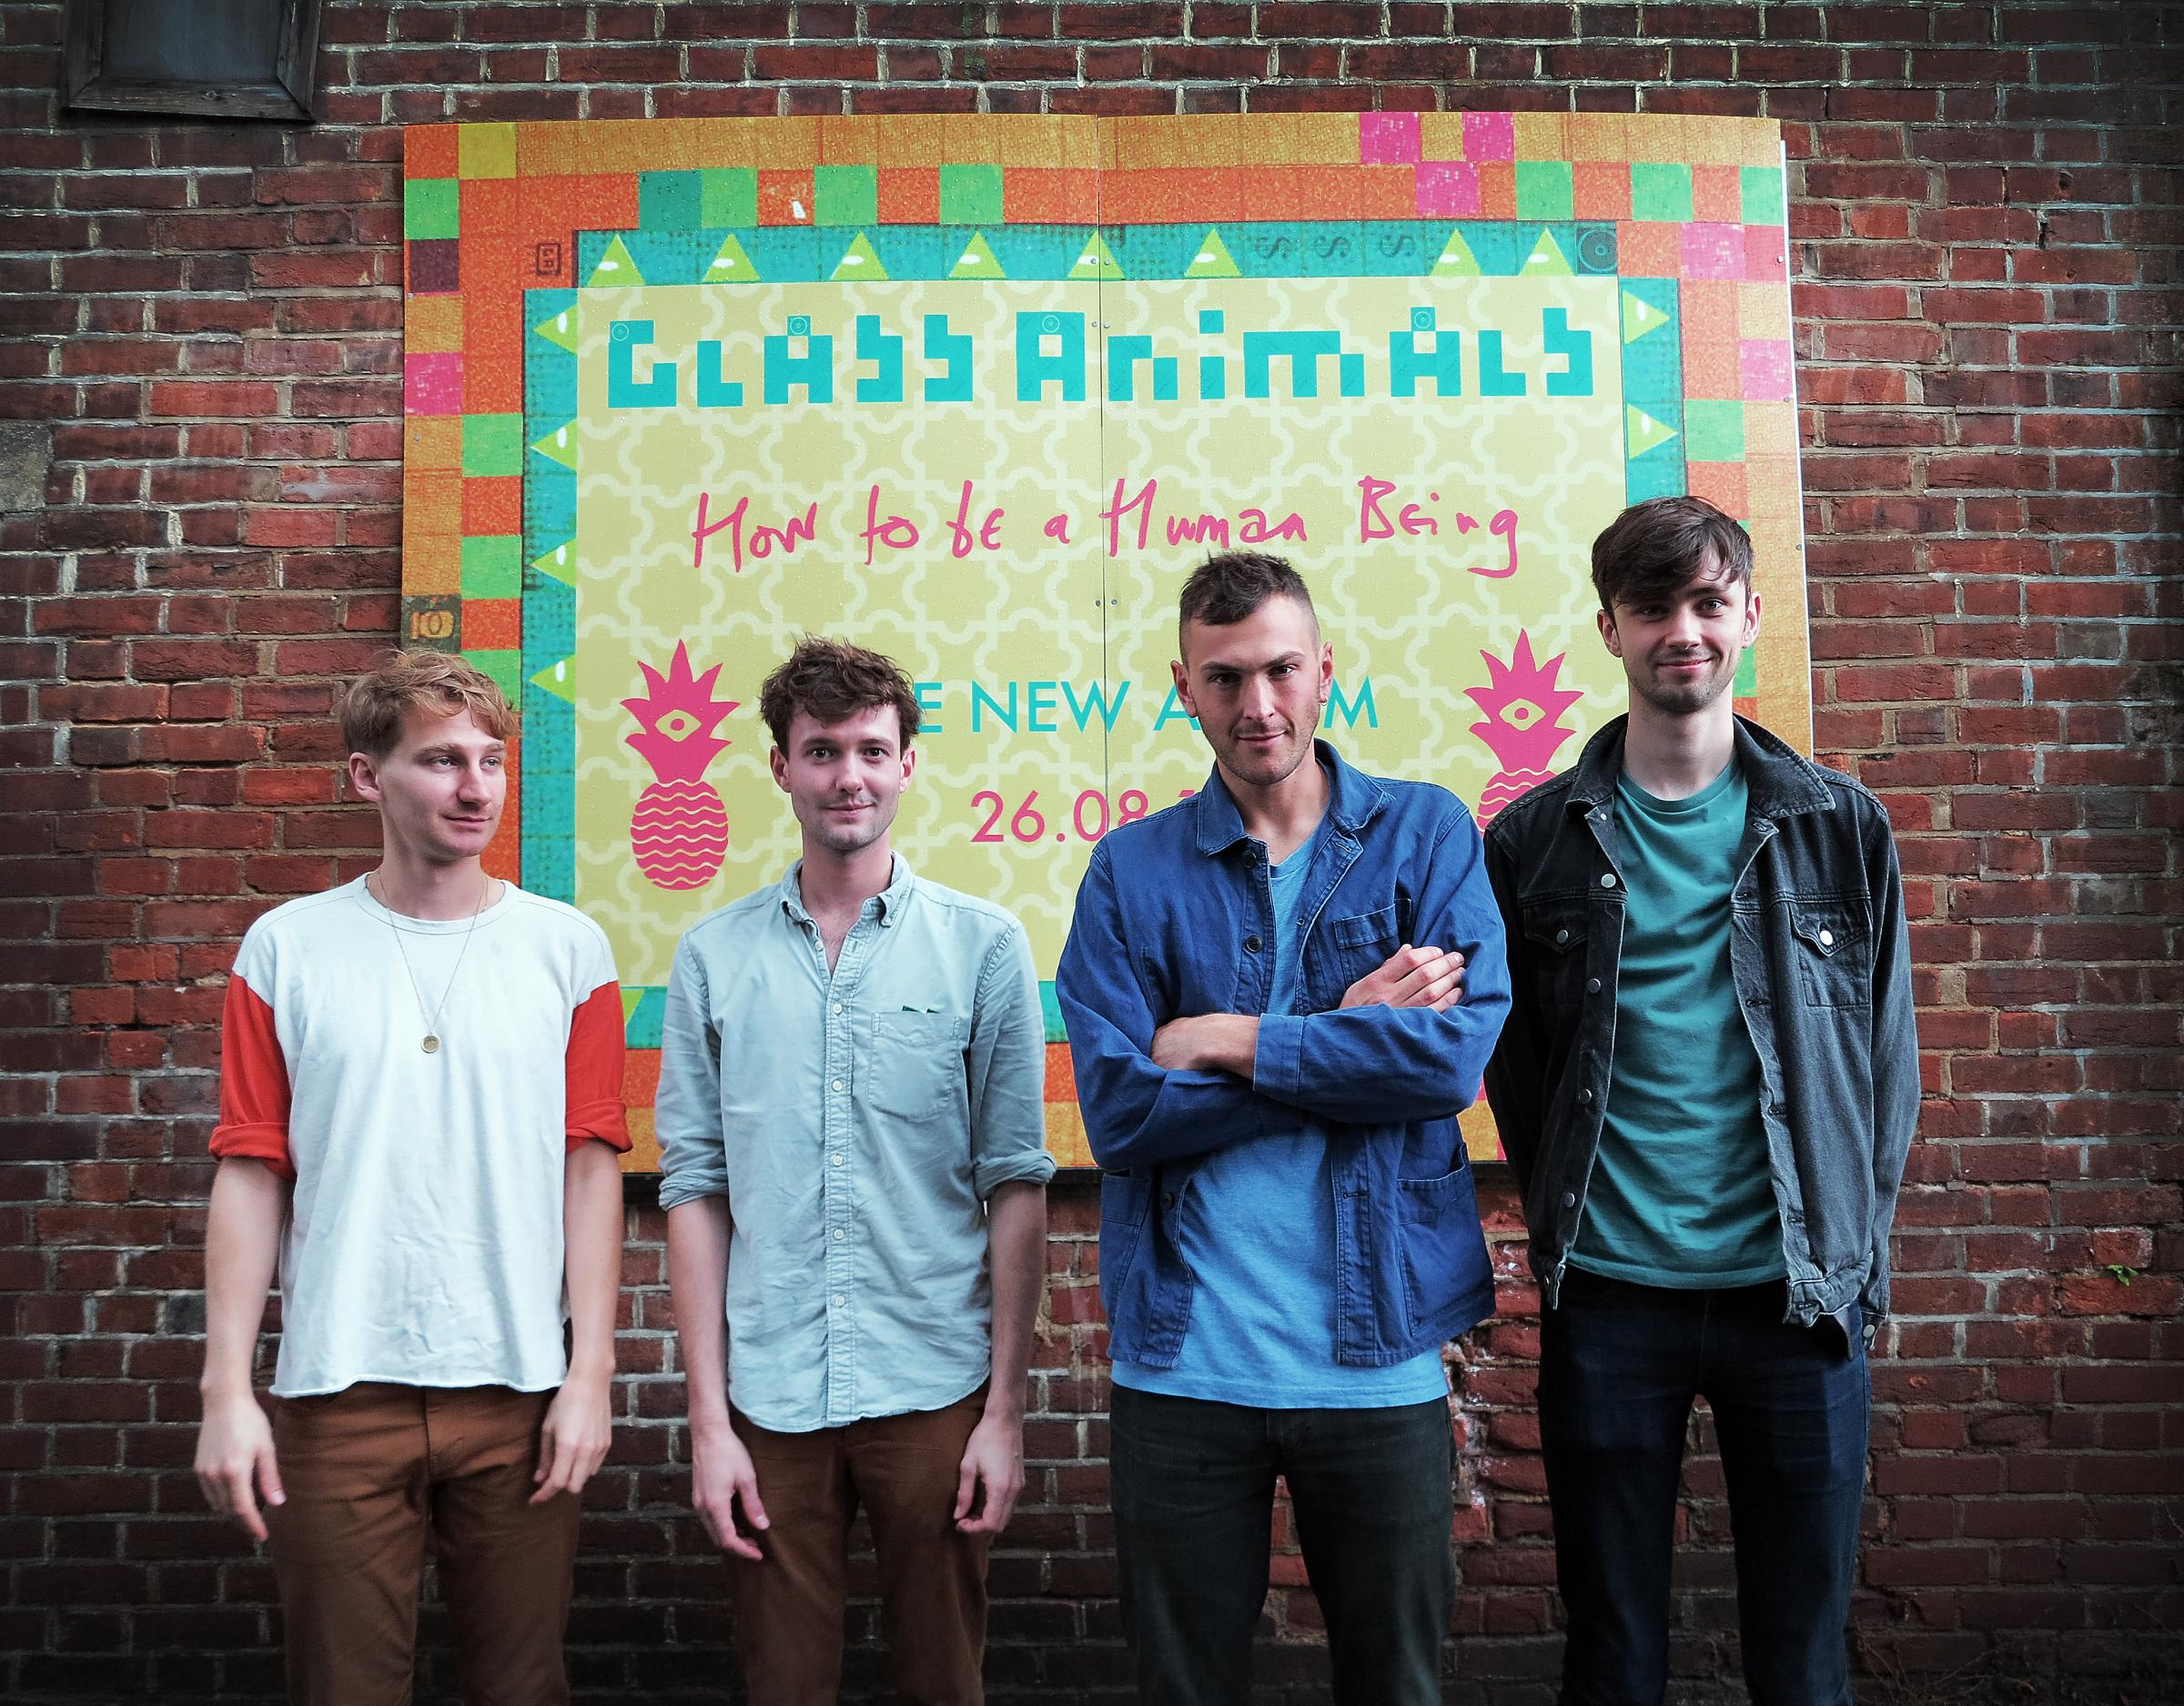 "27.08.16.Truck Store, Cowley Road, Oxford, OX4.For: Ed Nix (ed.nix@oxfordshire.newsquest.co.uk).Catchline: Glass Animals Signing.Oxford band Glass Animals launch their new album ""How To Be A Human Being"" at Truck Store on Cowley Road - Dave Bayl"